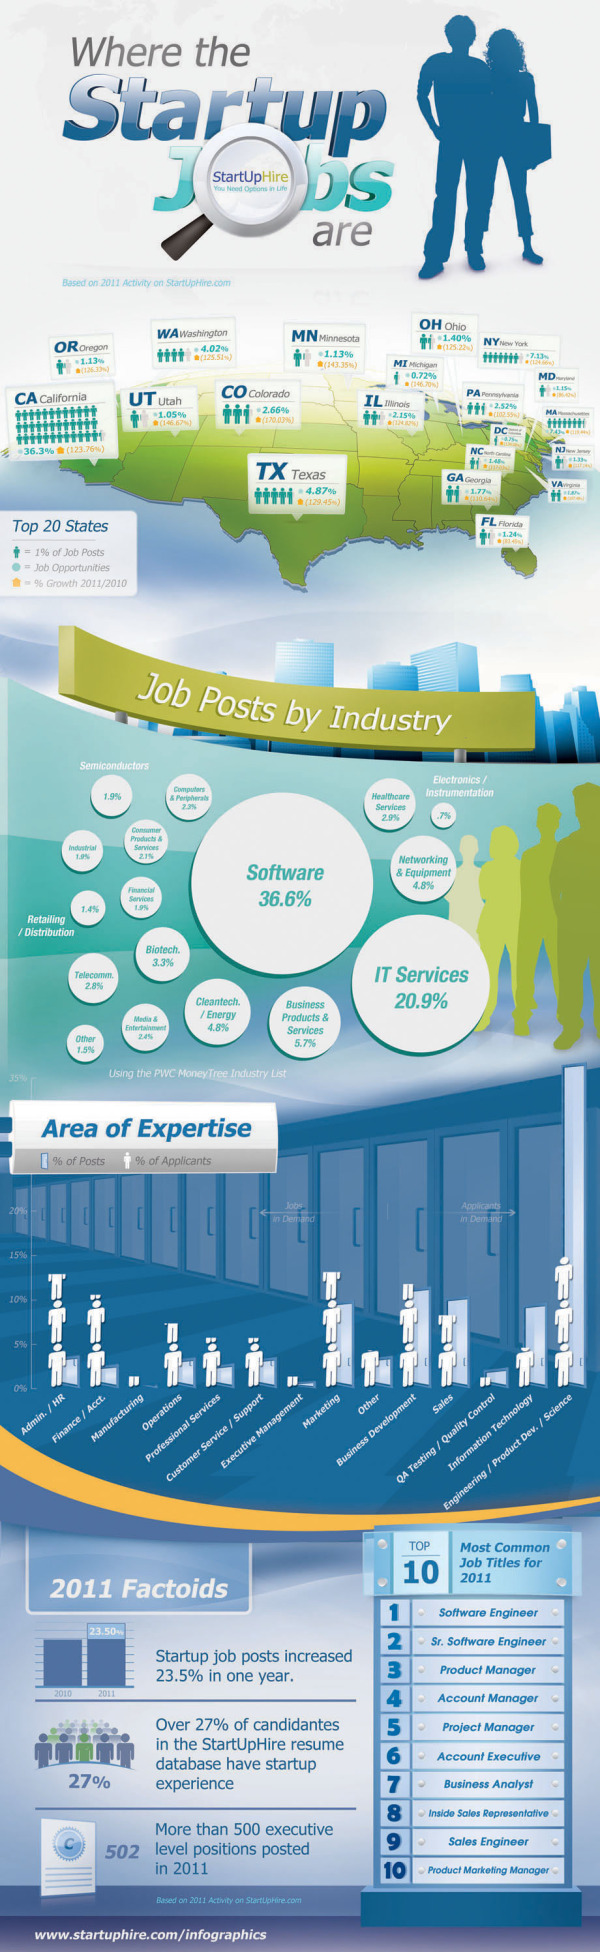 Where the Startup Jobs are infographic